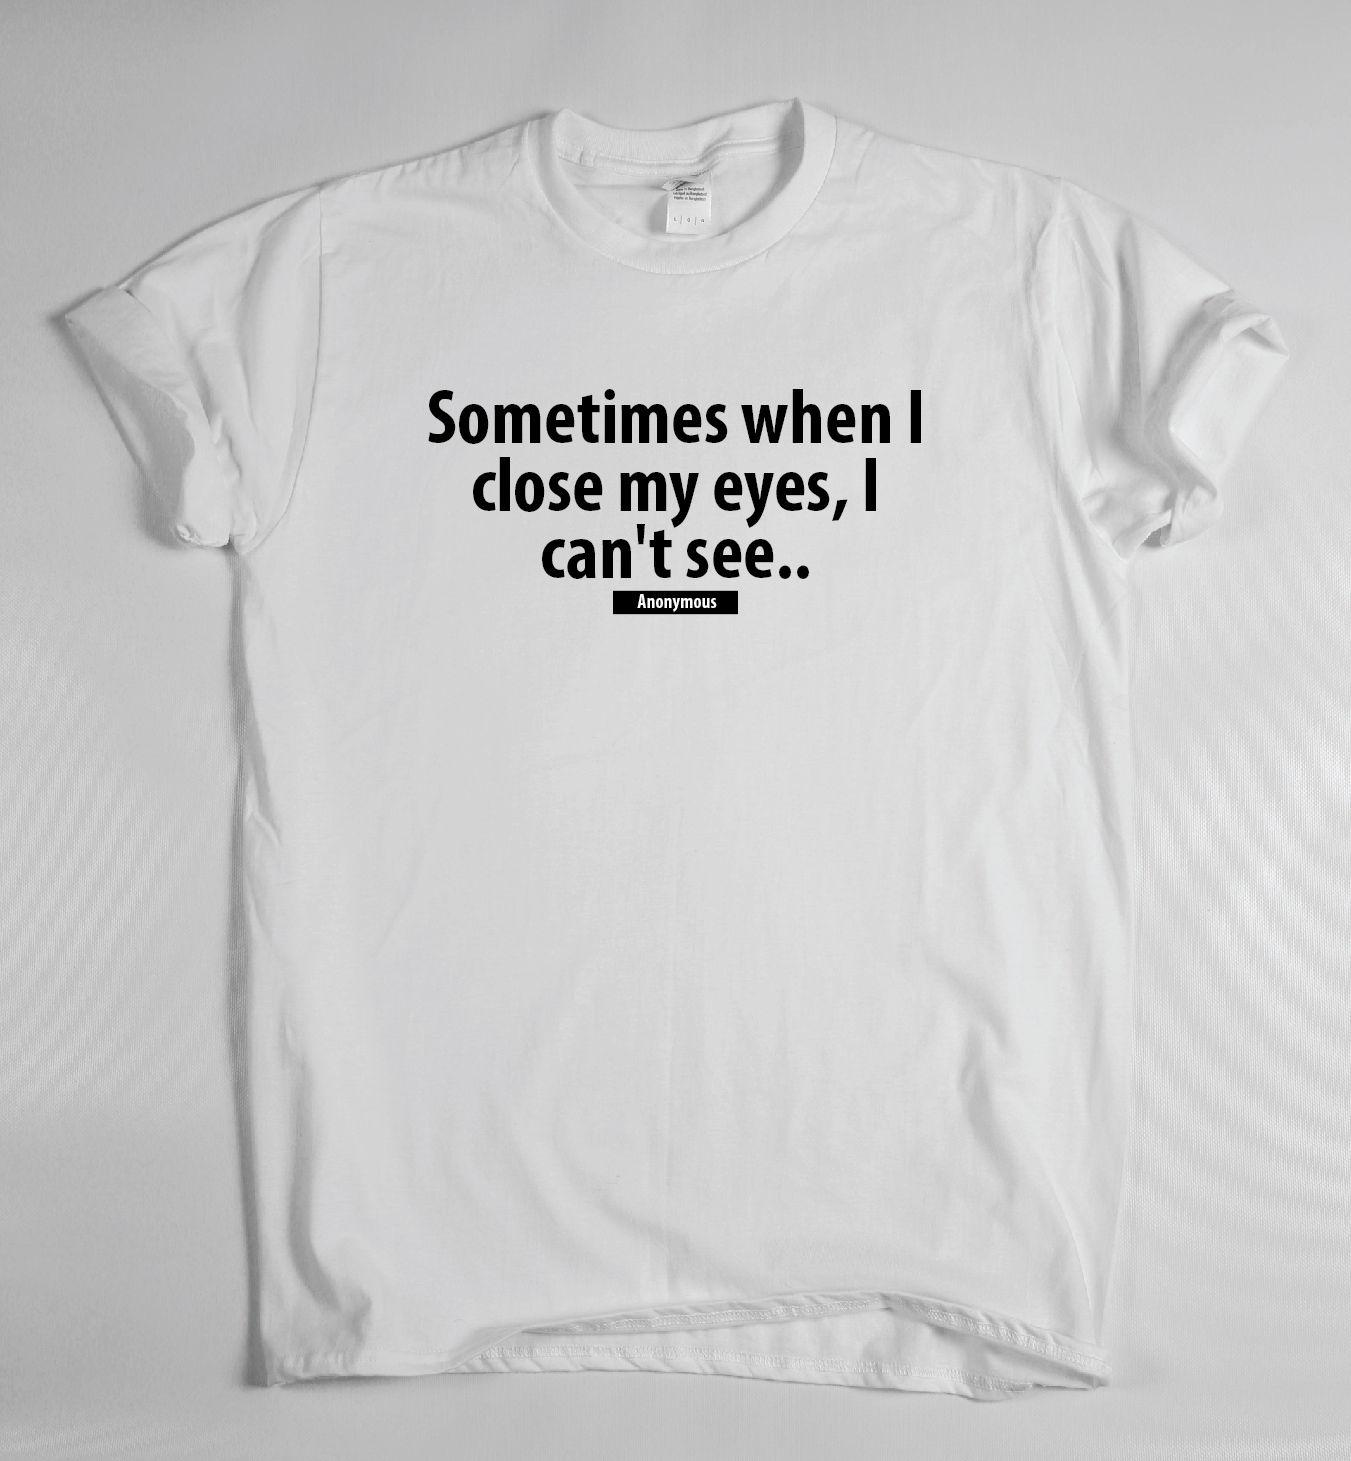 Sometime When I Close My Eyes funny saying T-shirt mens womens quote sarcasm